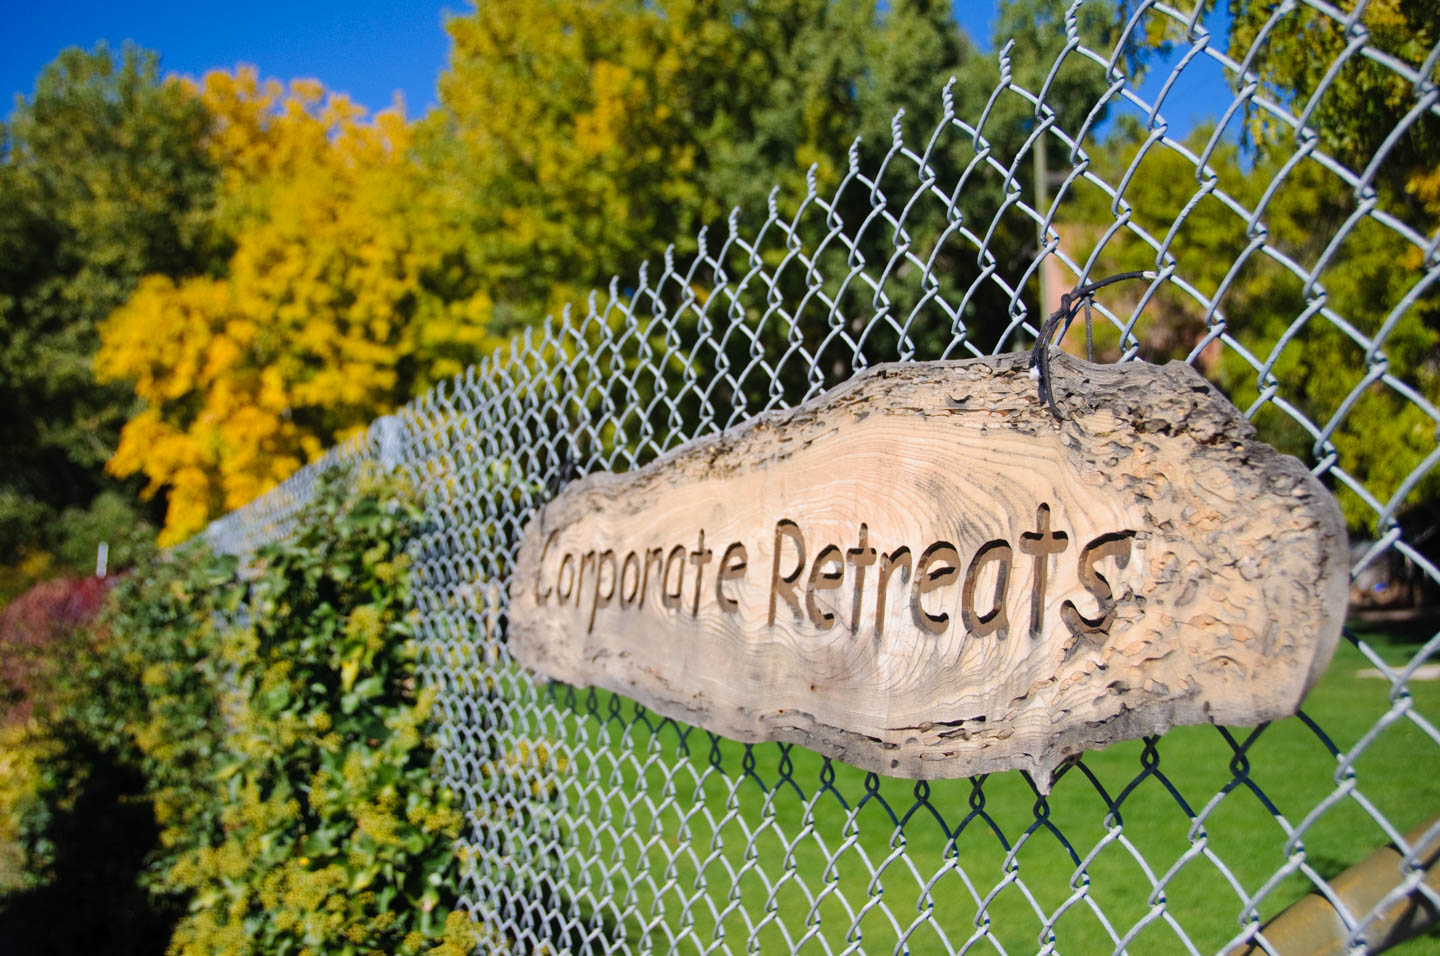 Corporate Retreat in Utah Lake